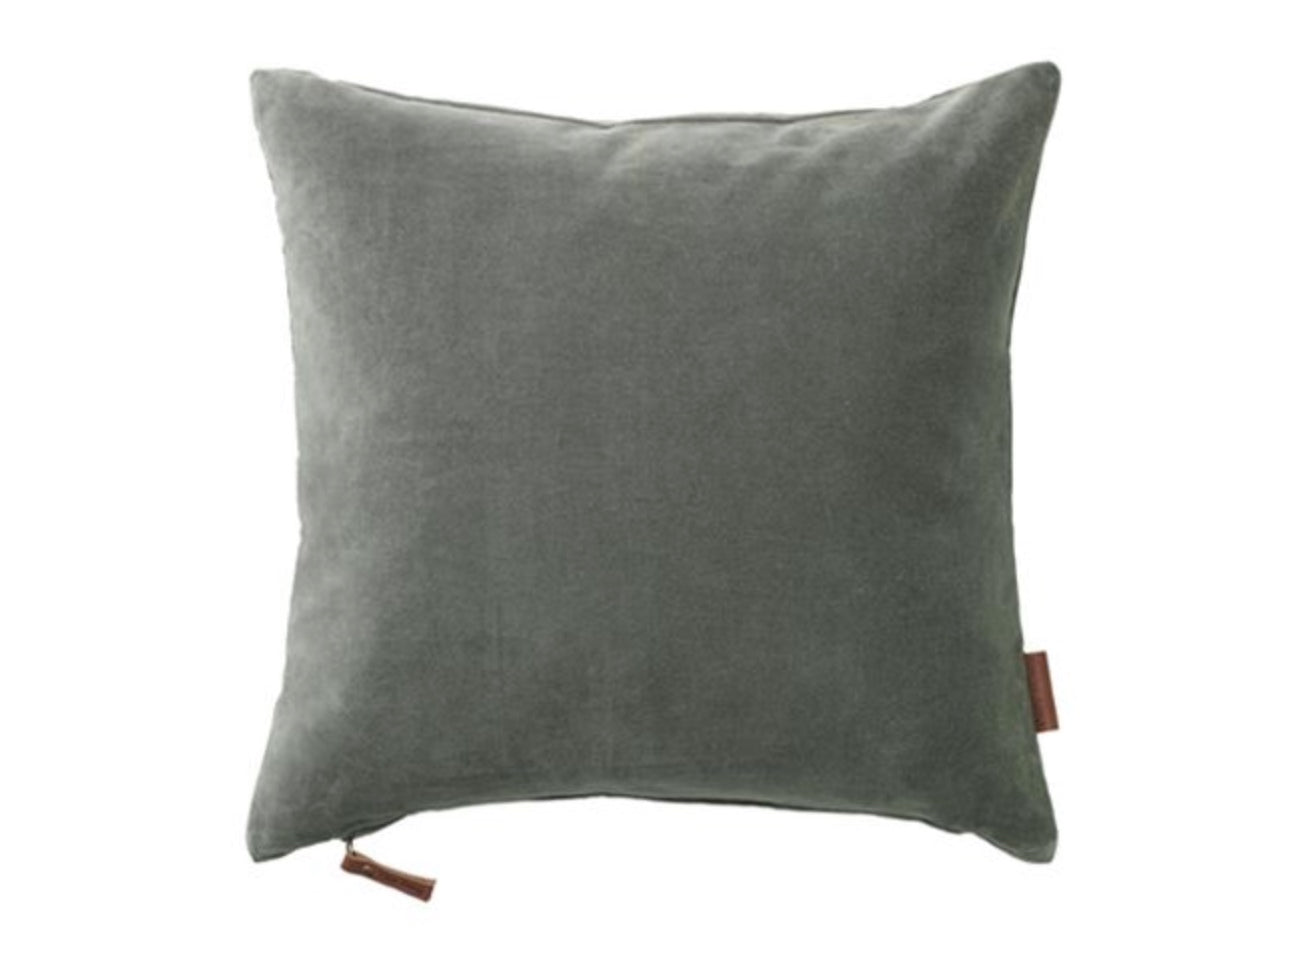 Subscription_OMNI_Cozy_Living_50x50_Velvet_Gray_Pillow_Lounge_comfort_office_absorb_sound_cozy_classic_Danish_design